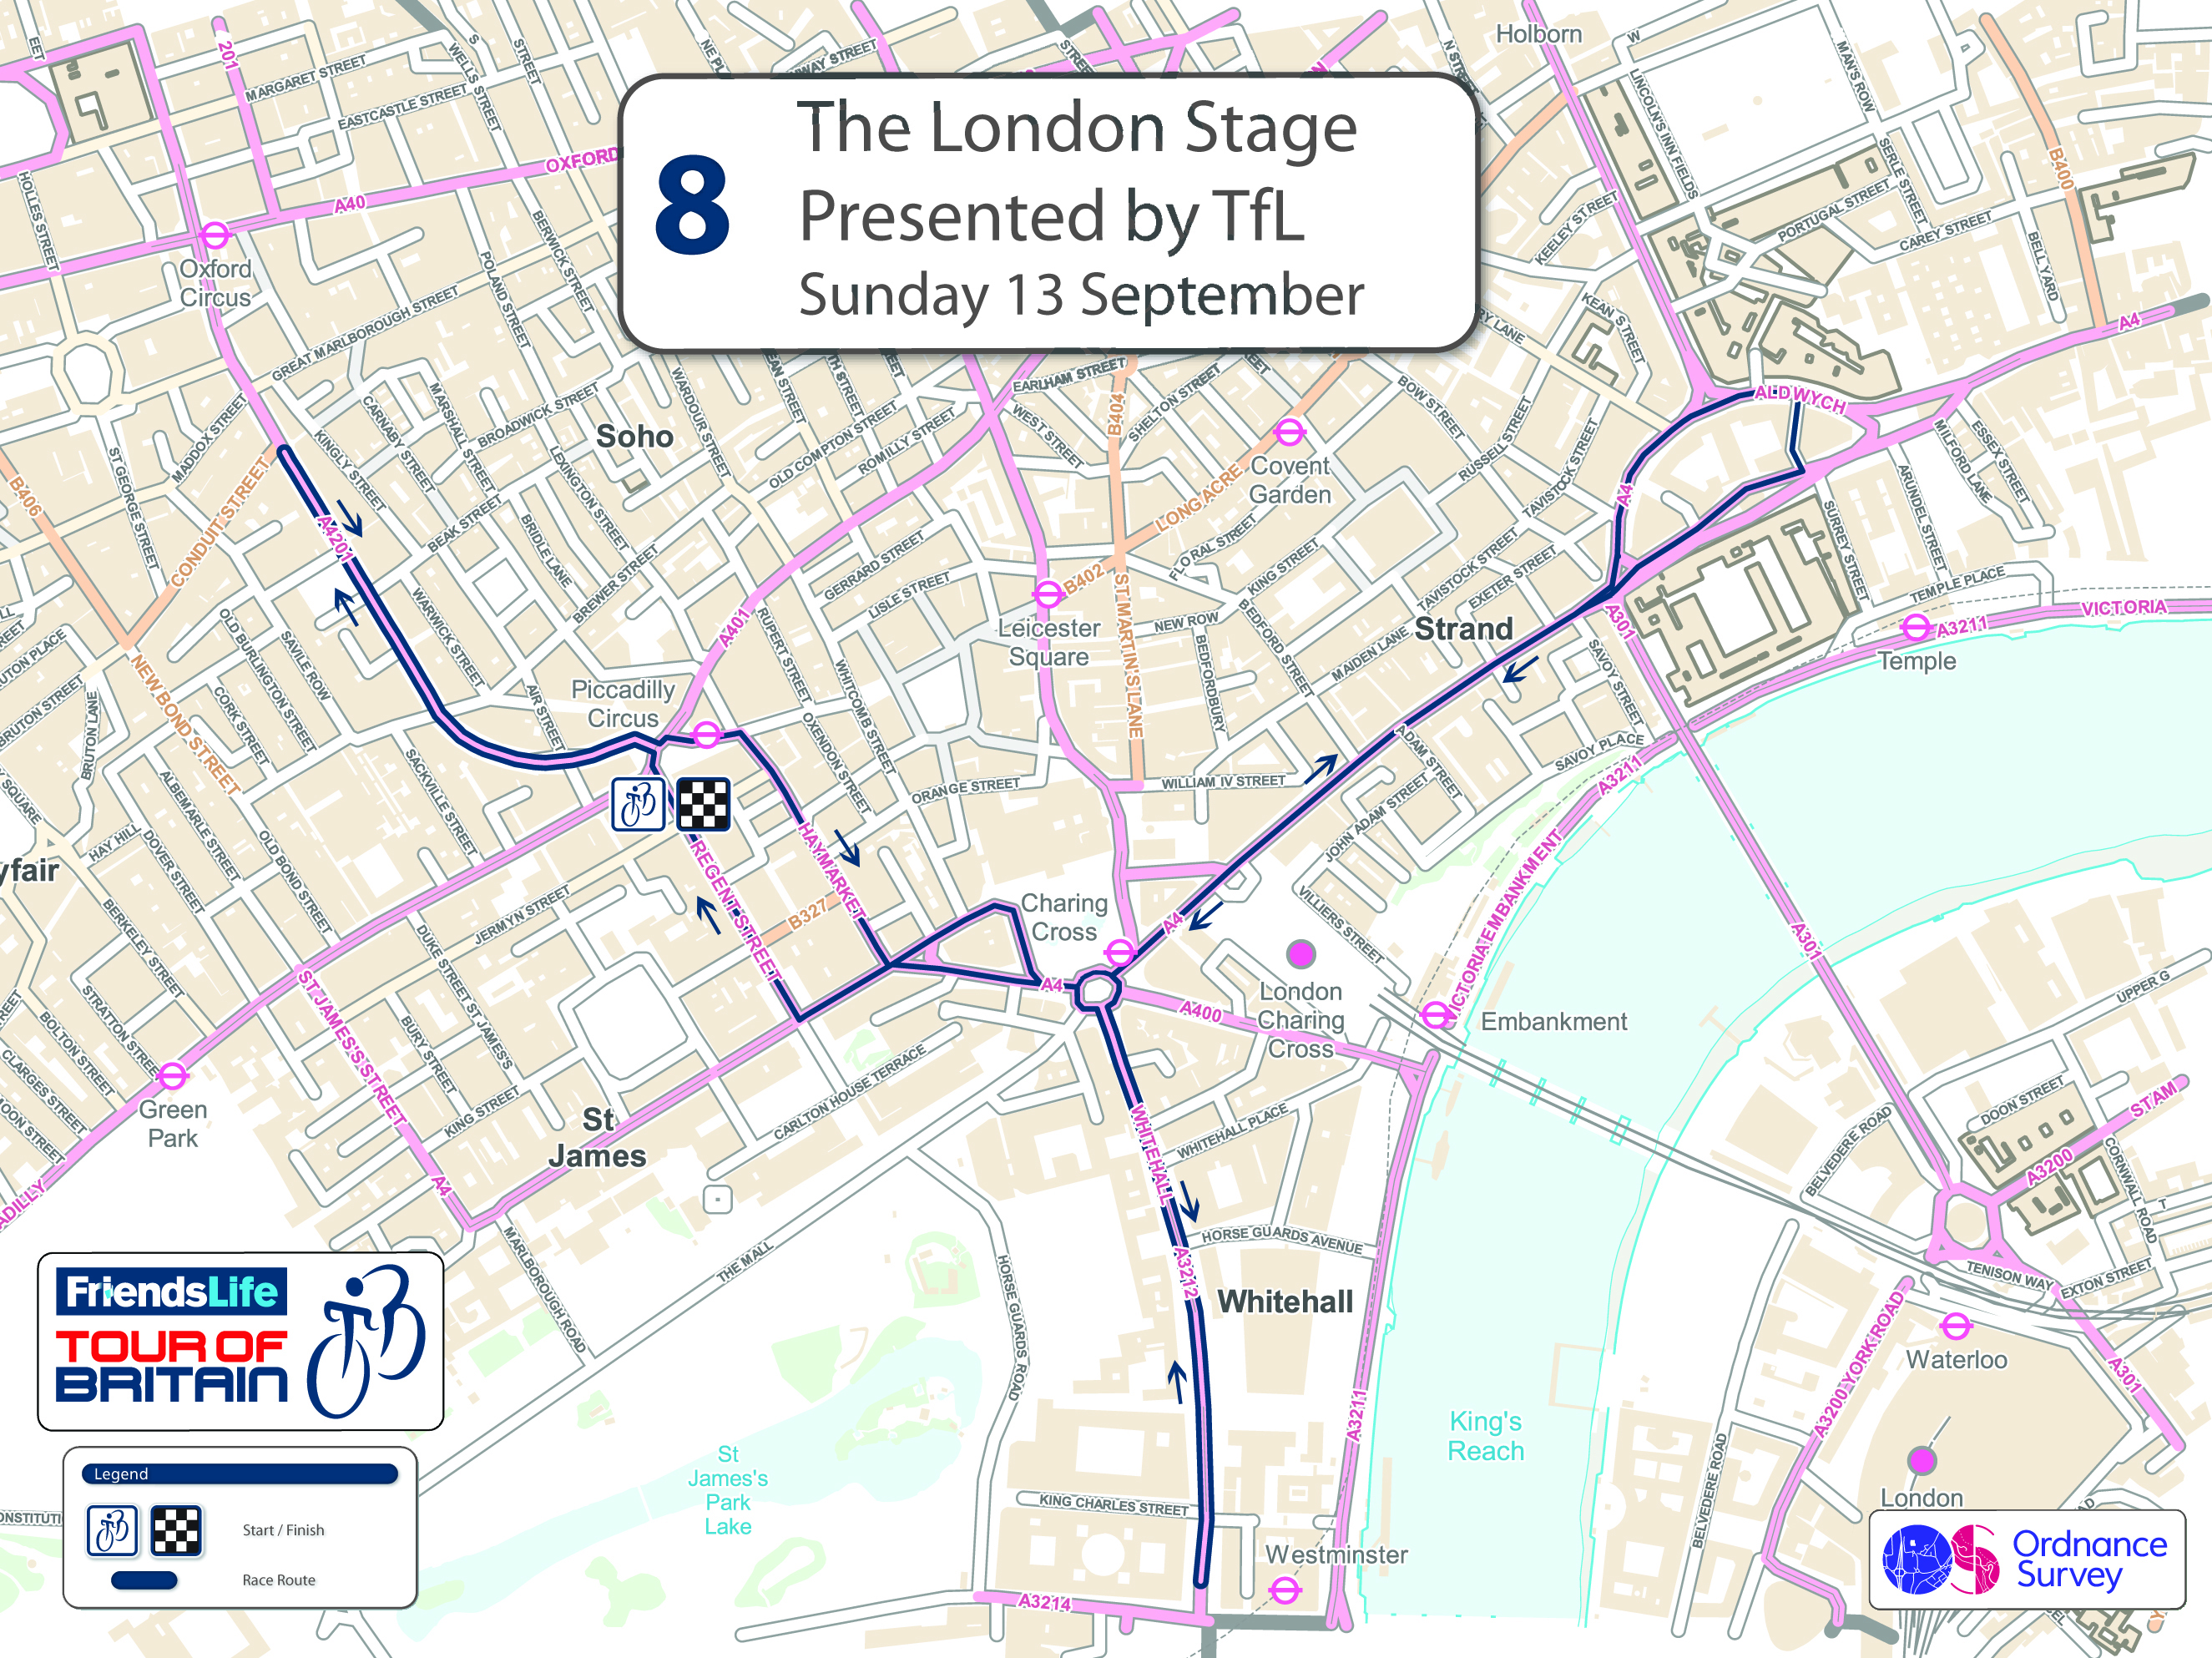 2015 Tour of Britain stage eight, London stage presented by TfL, 93km